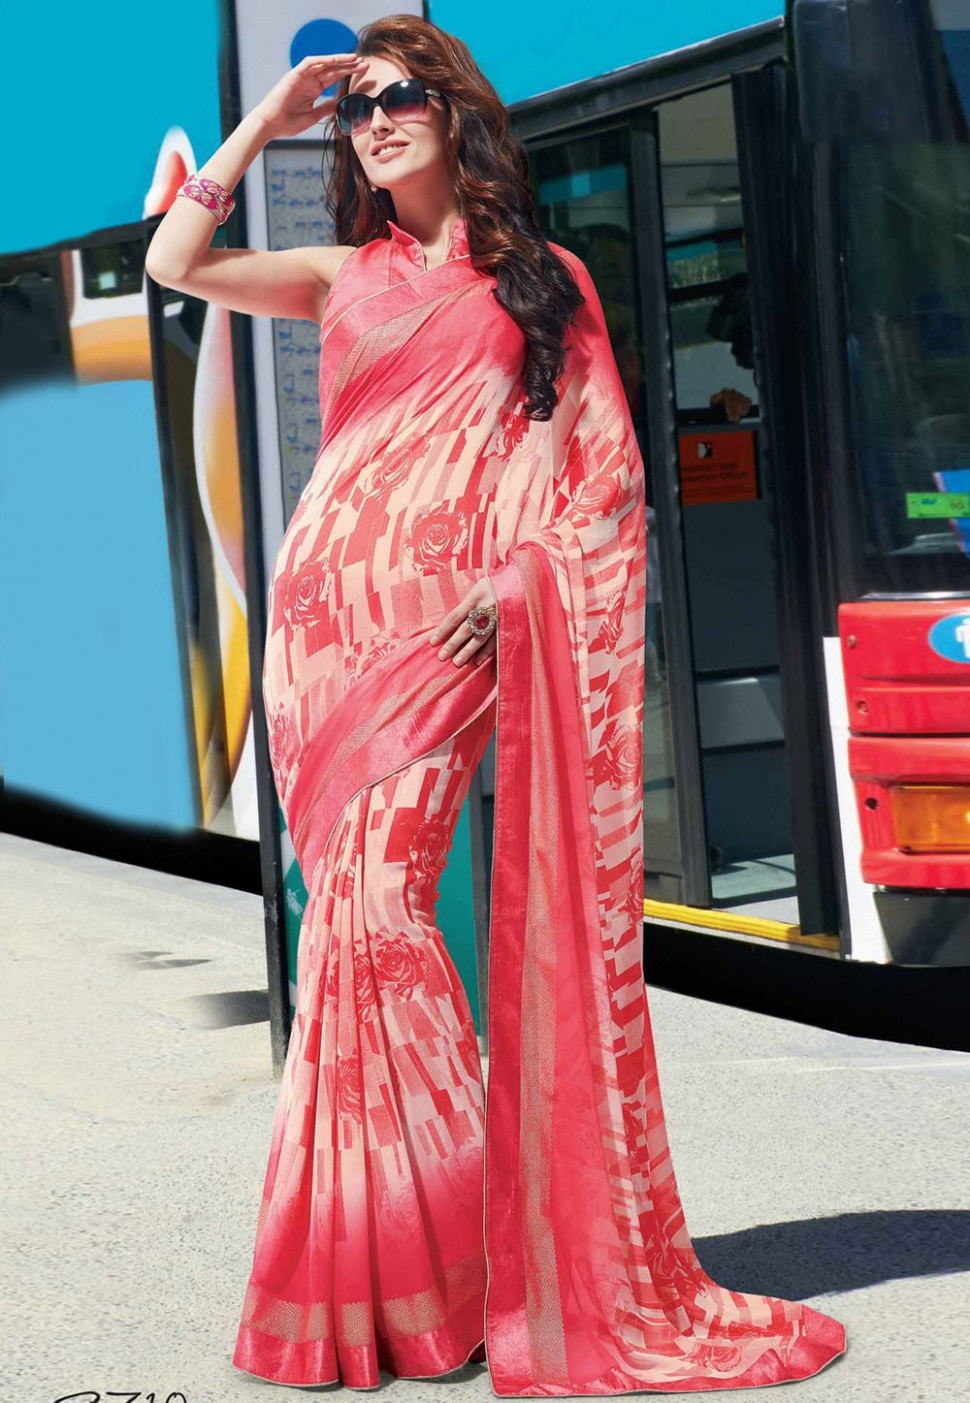 Nivi Style Saree Draping: Its Origin, Innovation And More